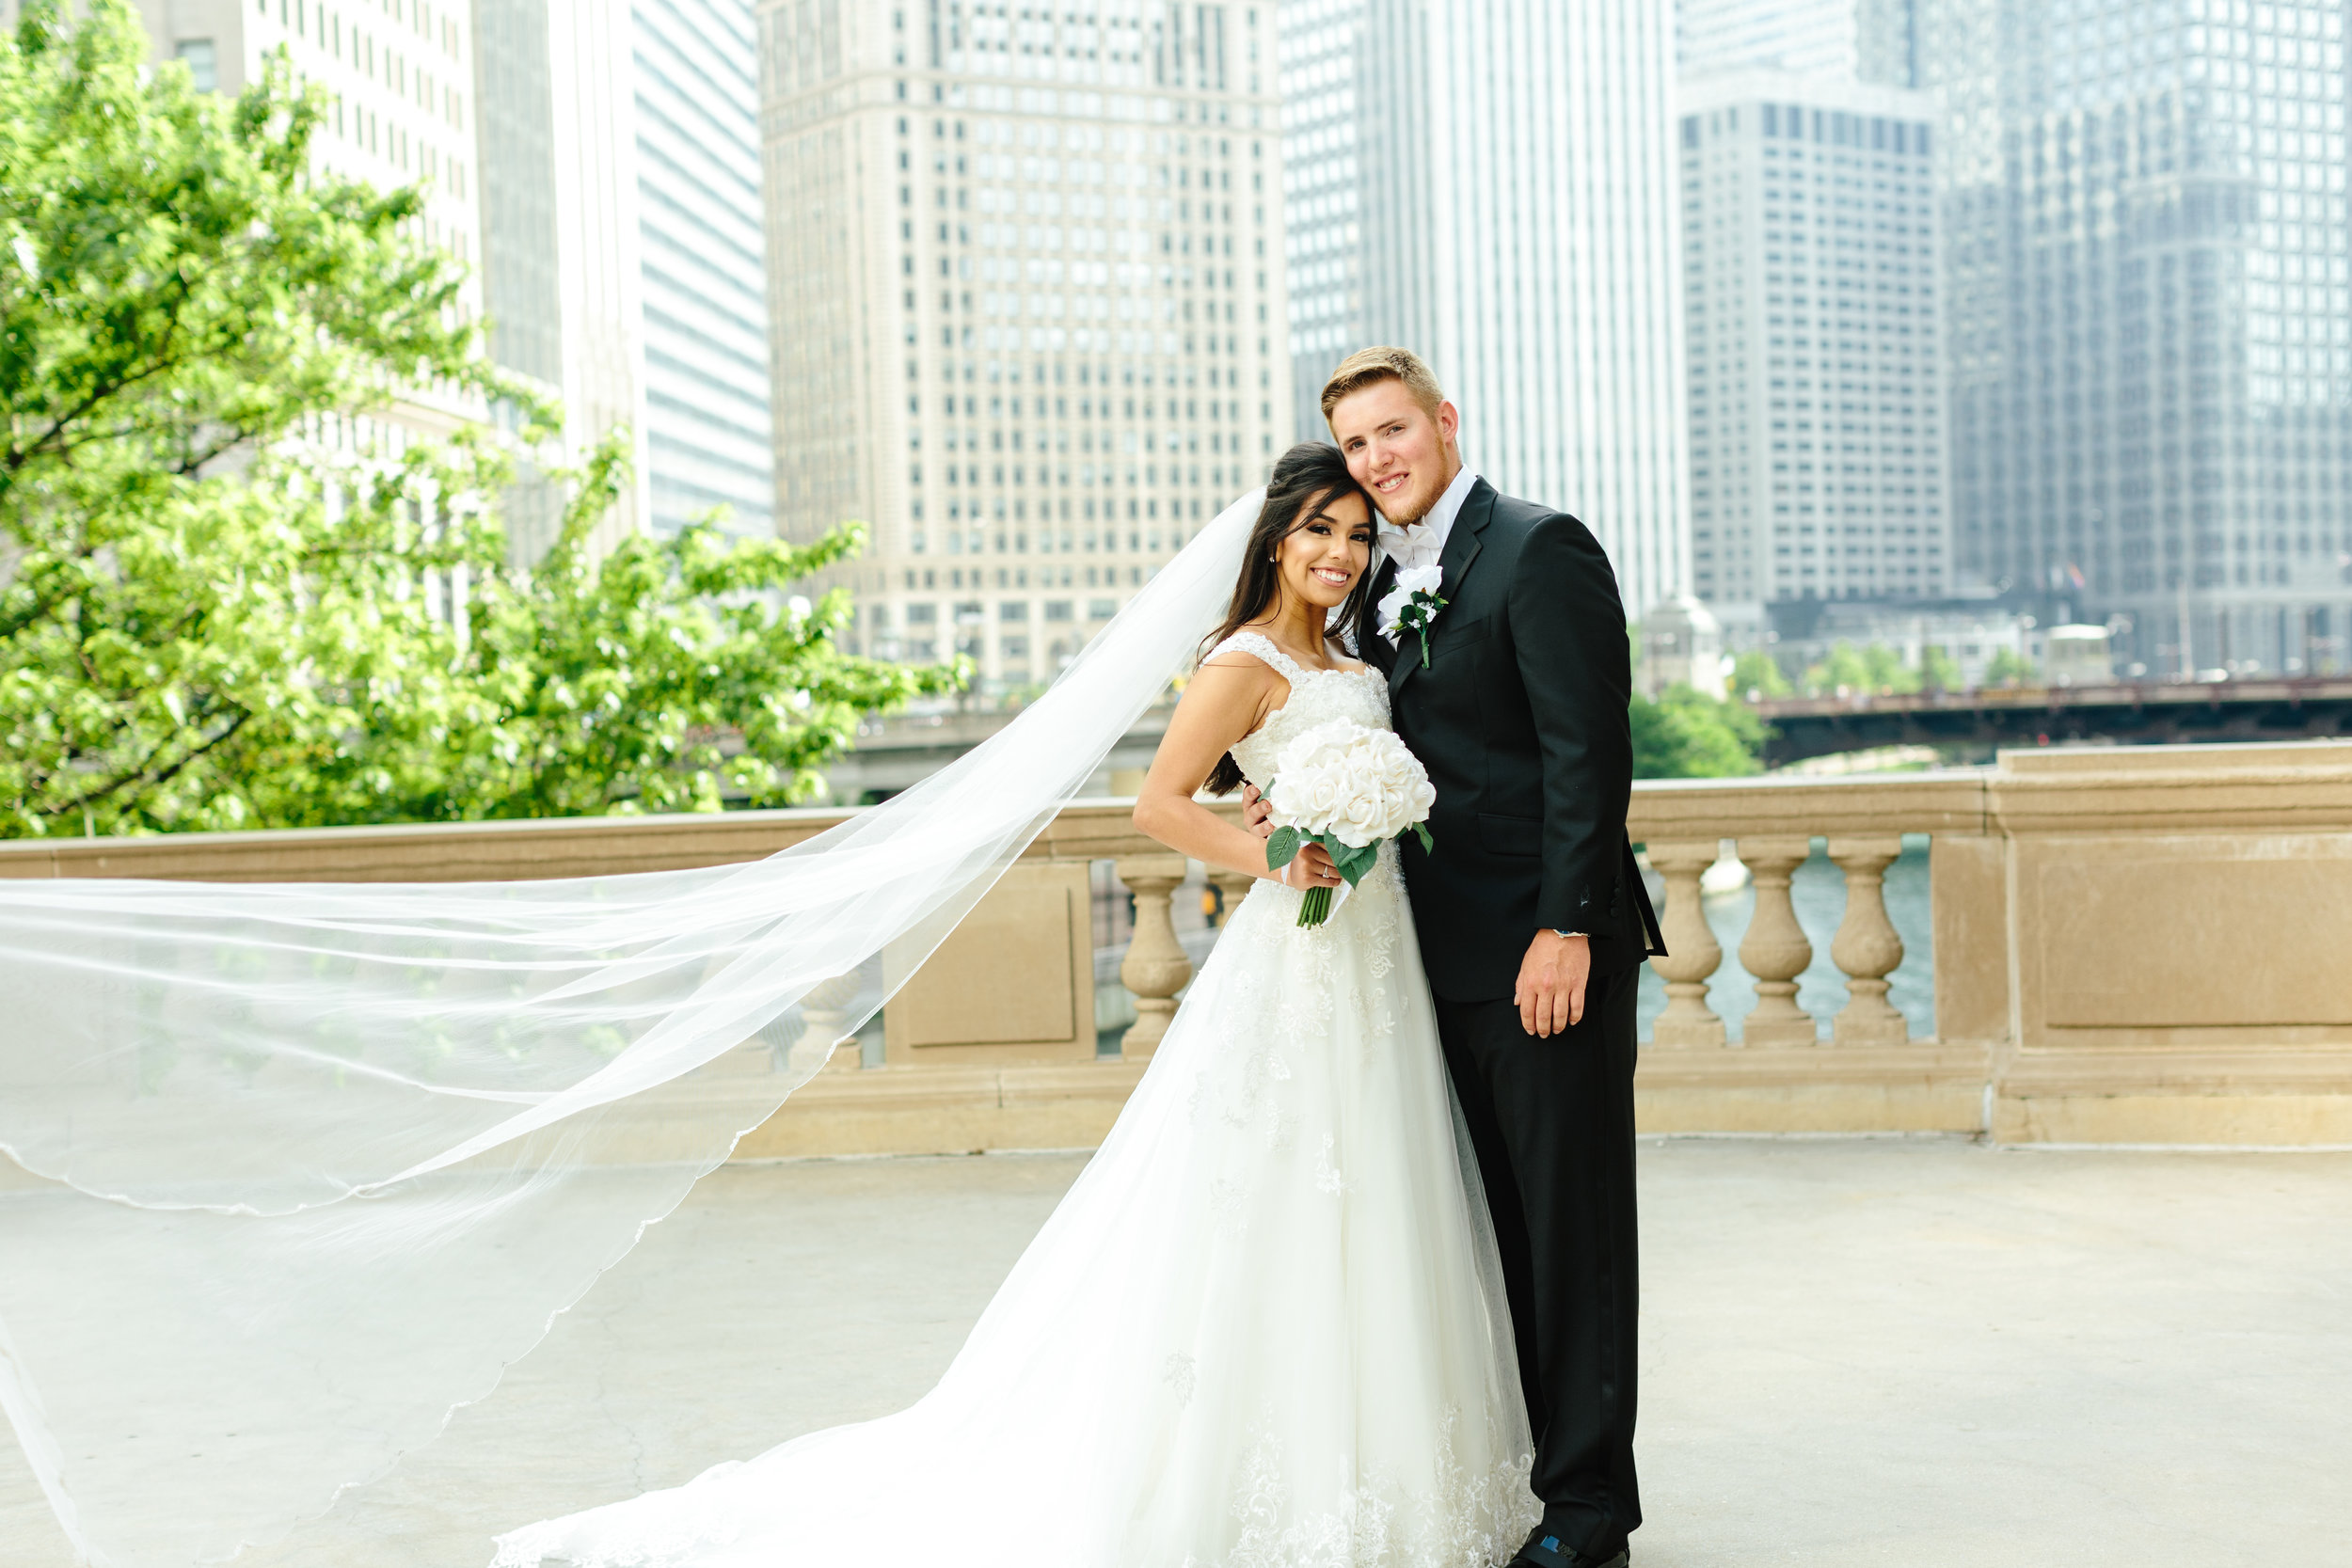 Your Day by MK | Chicago Wedding Planner | Chicago Wrigley Building Wedding